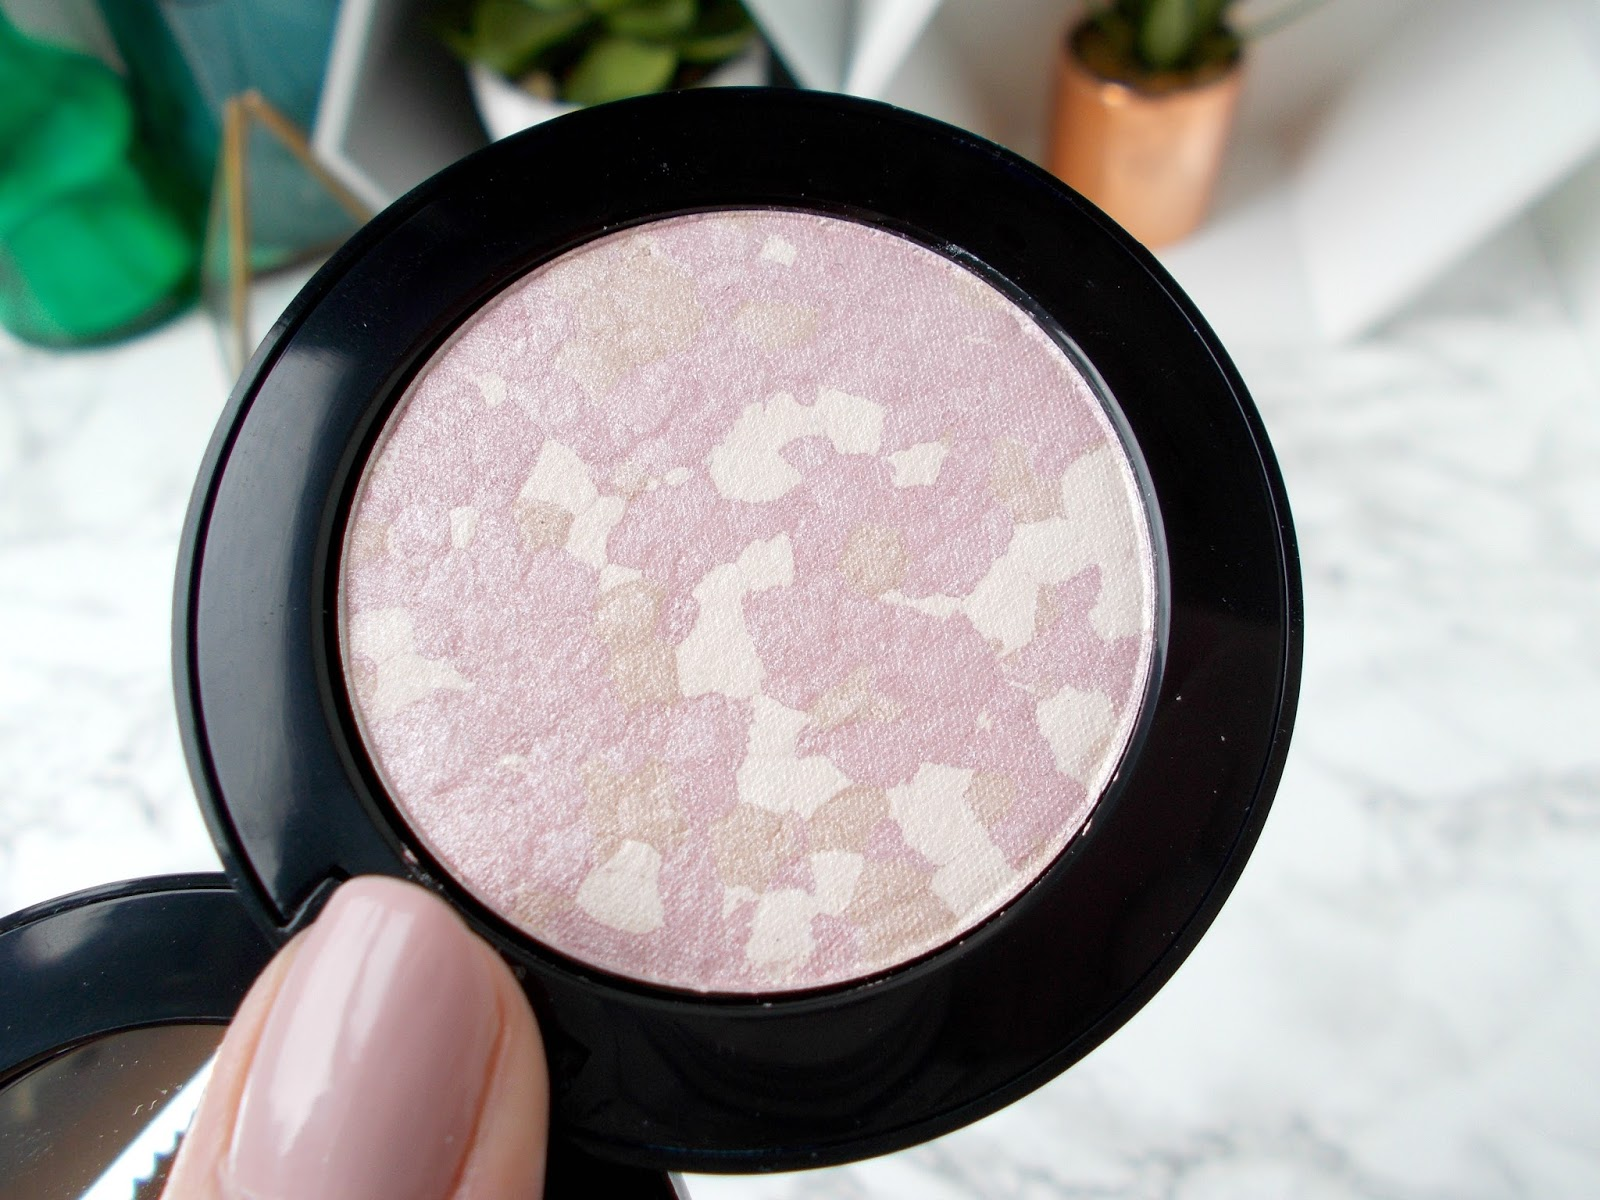 Vincent Longo La Bella Luce Highlighter in Flora close up review